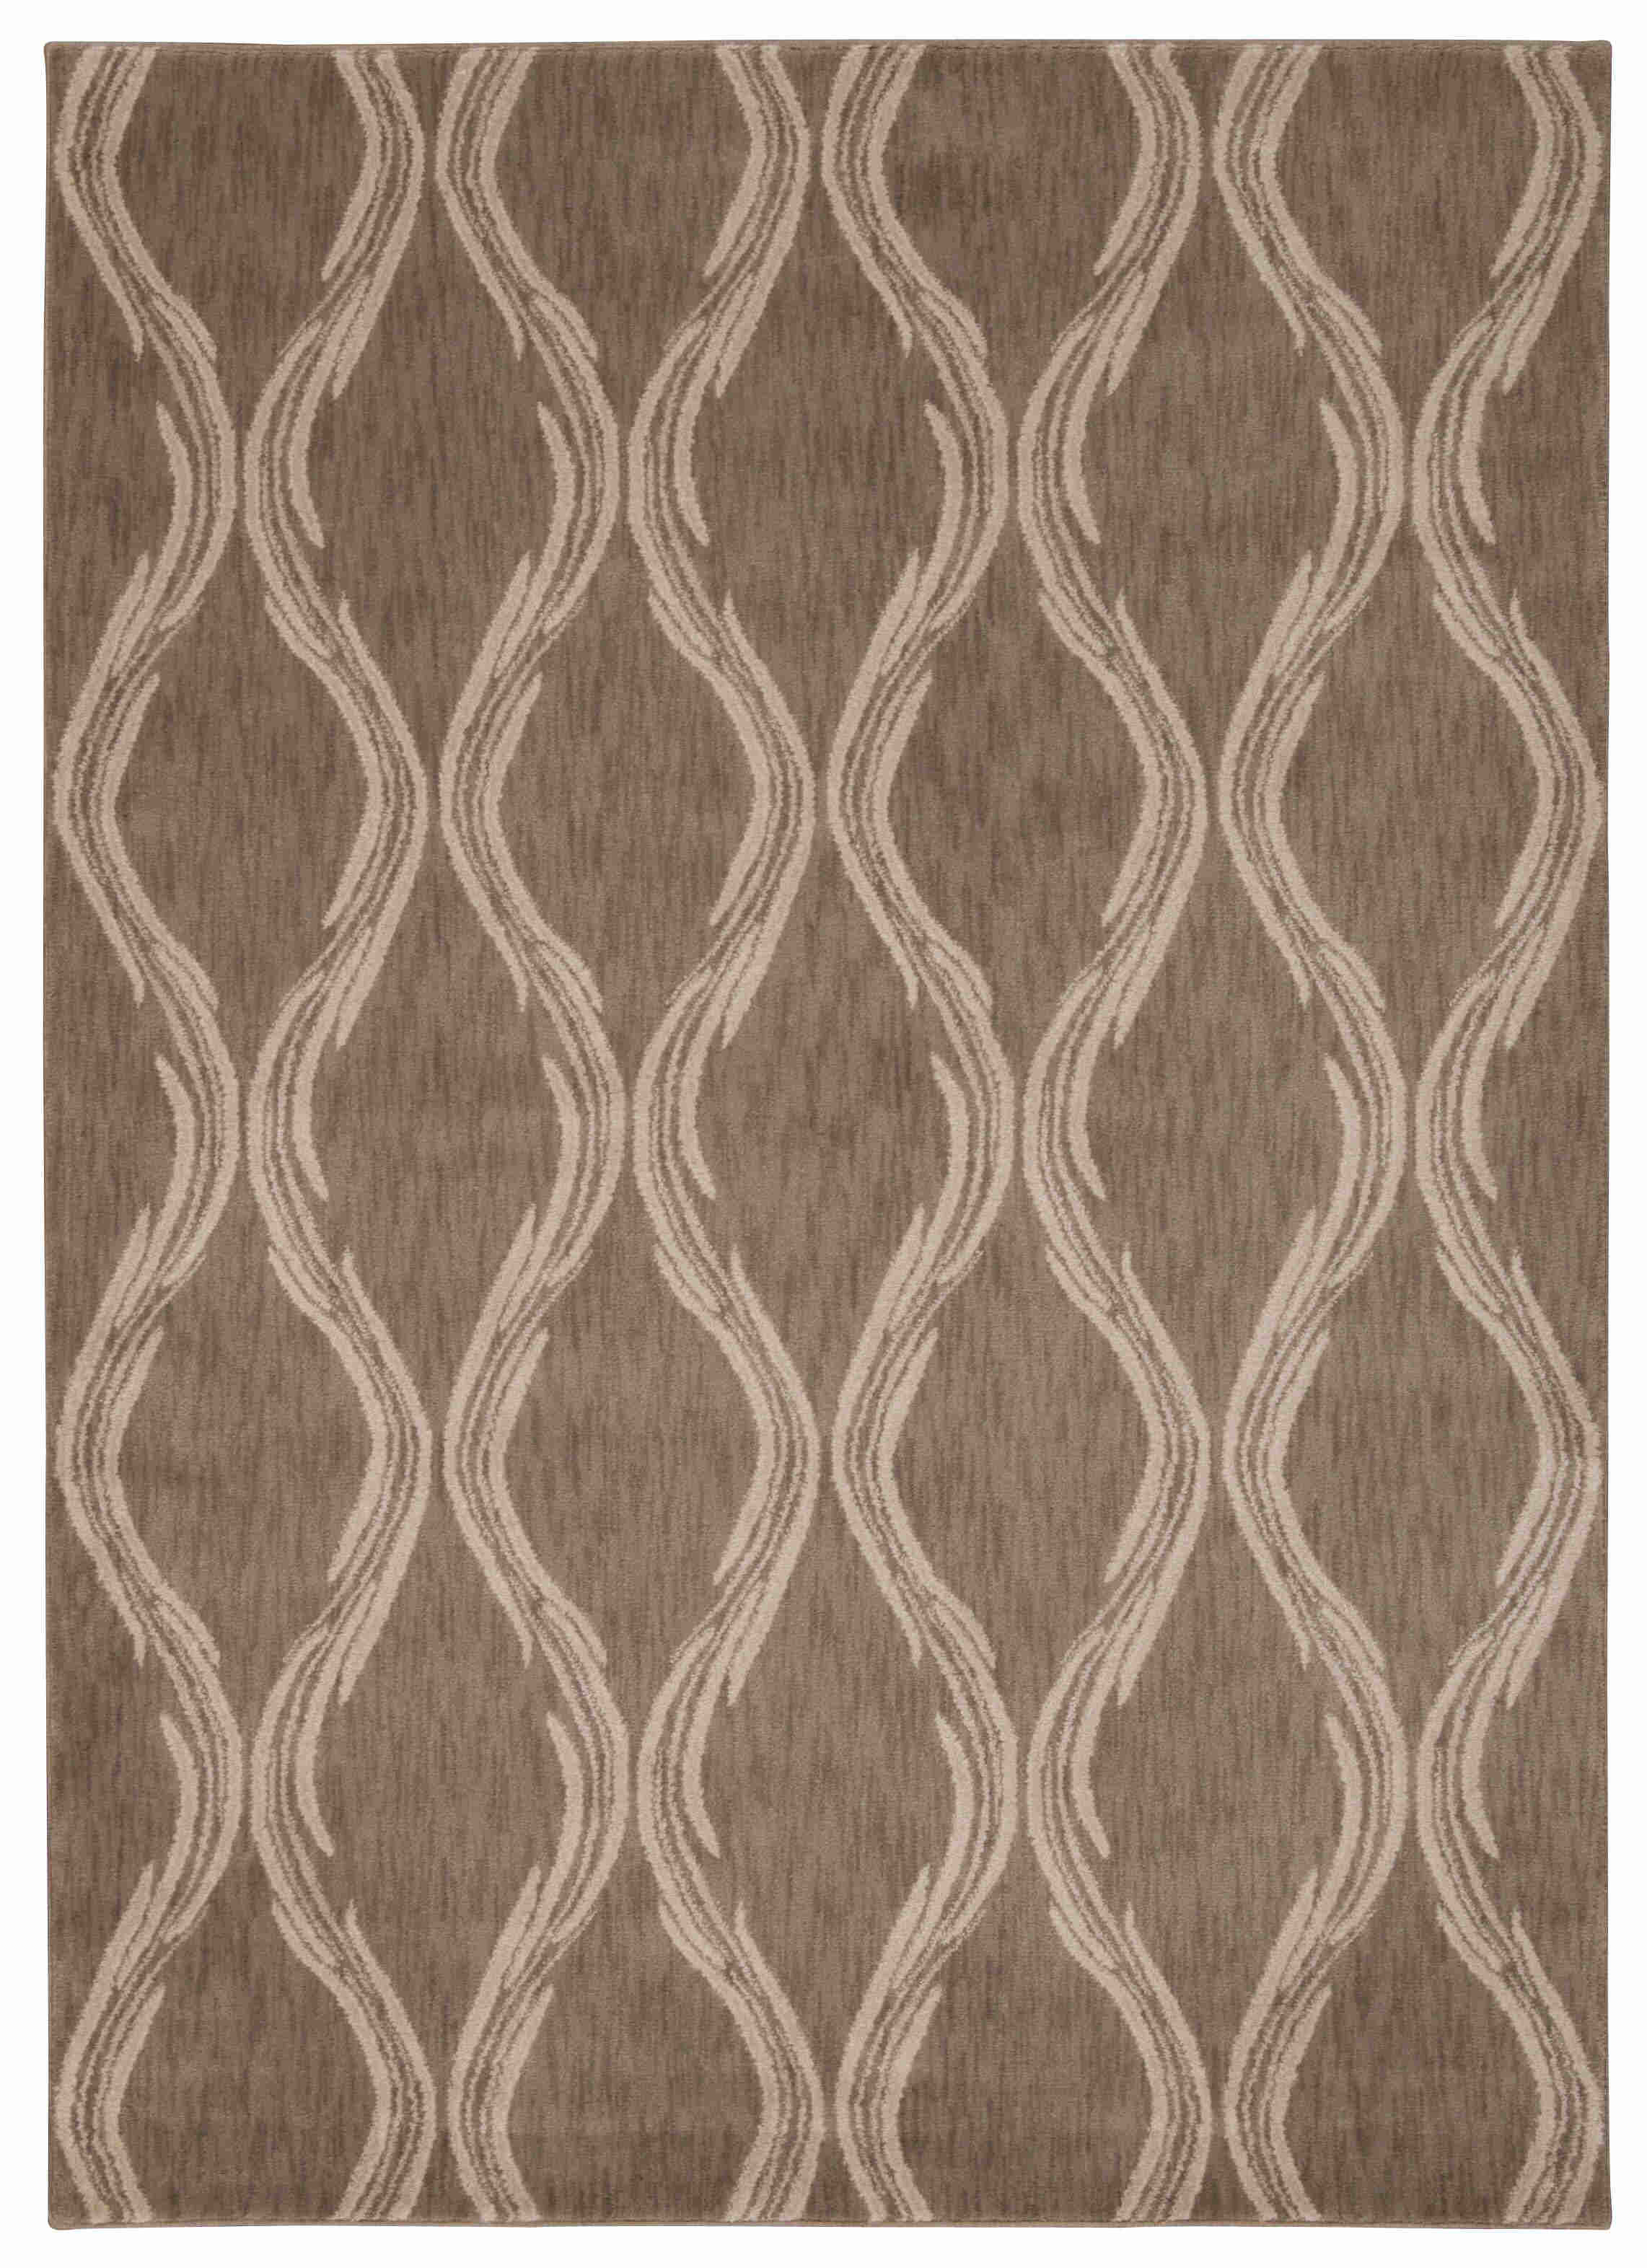 Tranquility Machine Woven Taupe Area Rugs